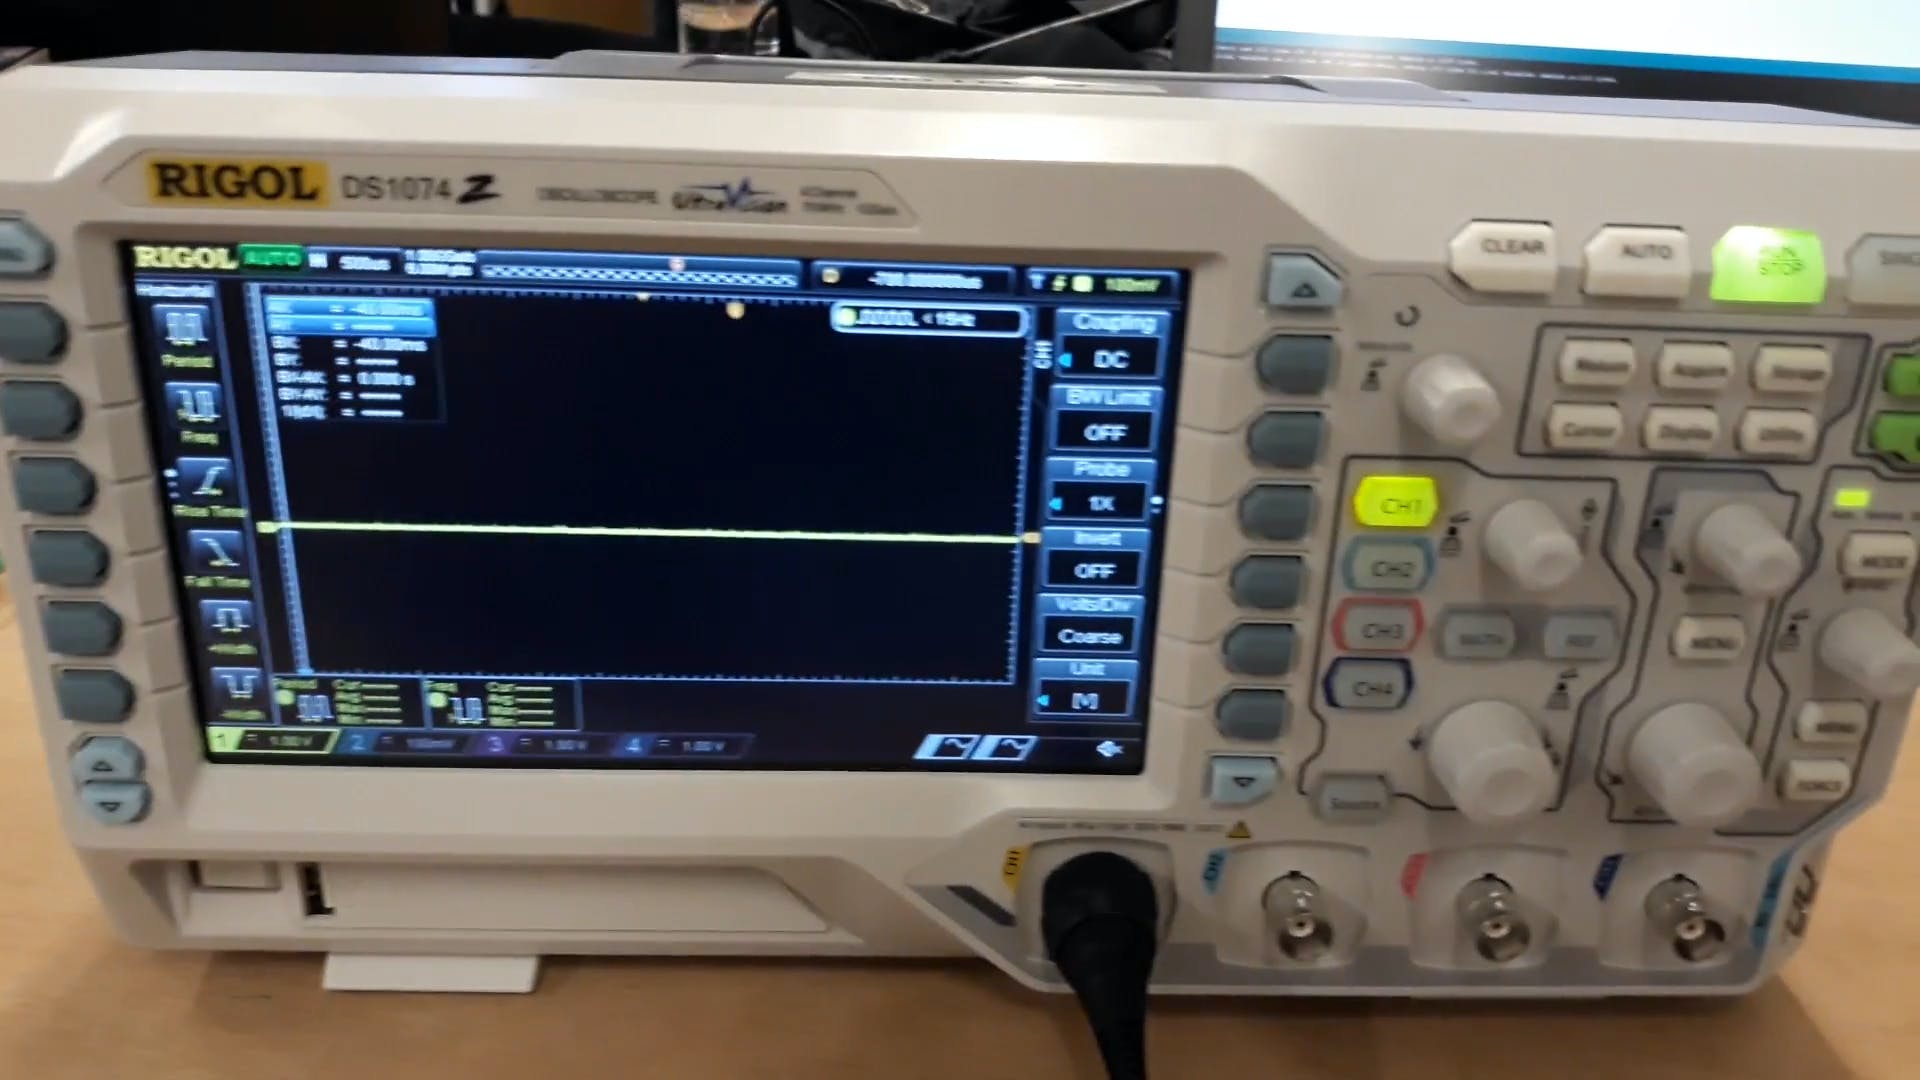 The output of the low pass filter on an oscilloscope